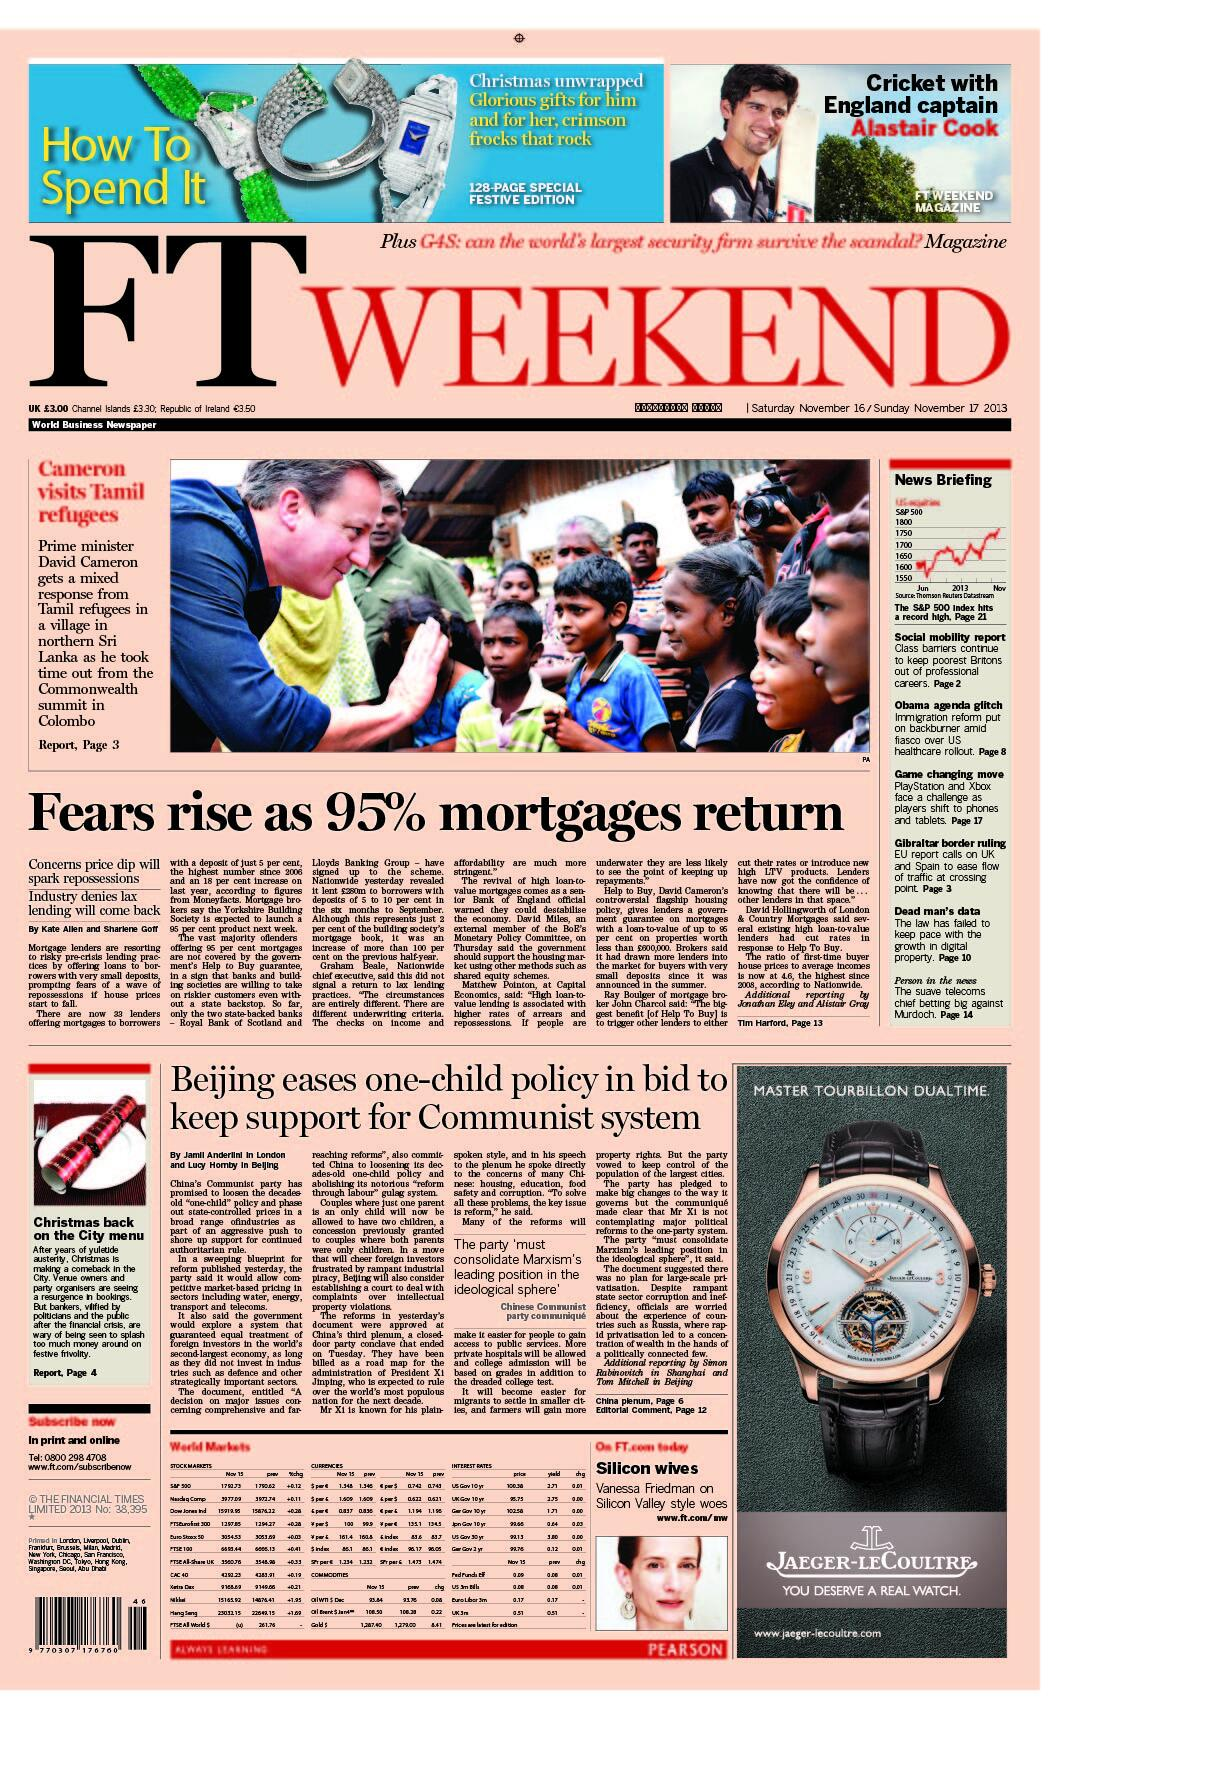 Just published: take a look at the UK front page of the Financial Times, Saturday November 16 http://t.co/8Ity83GwLC